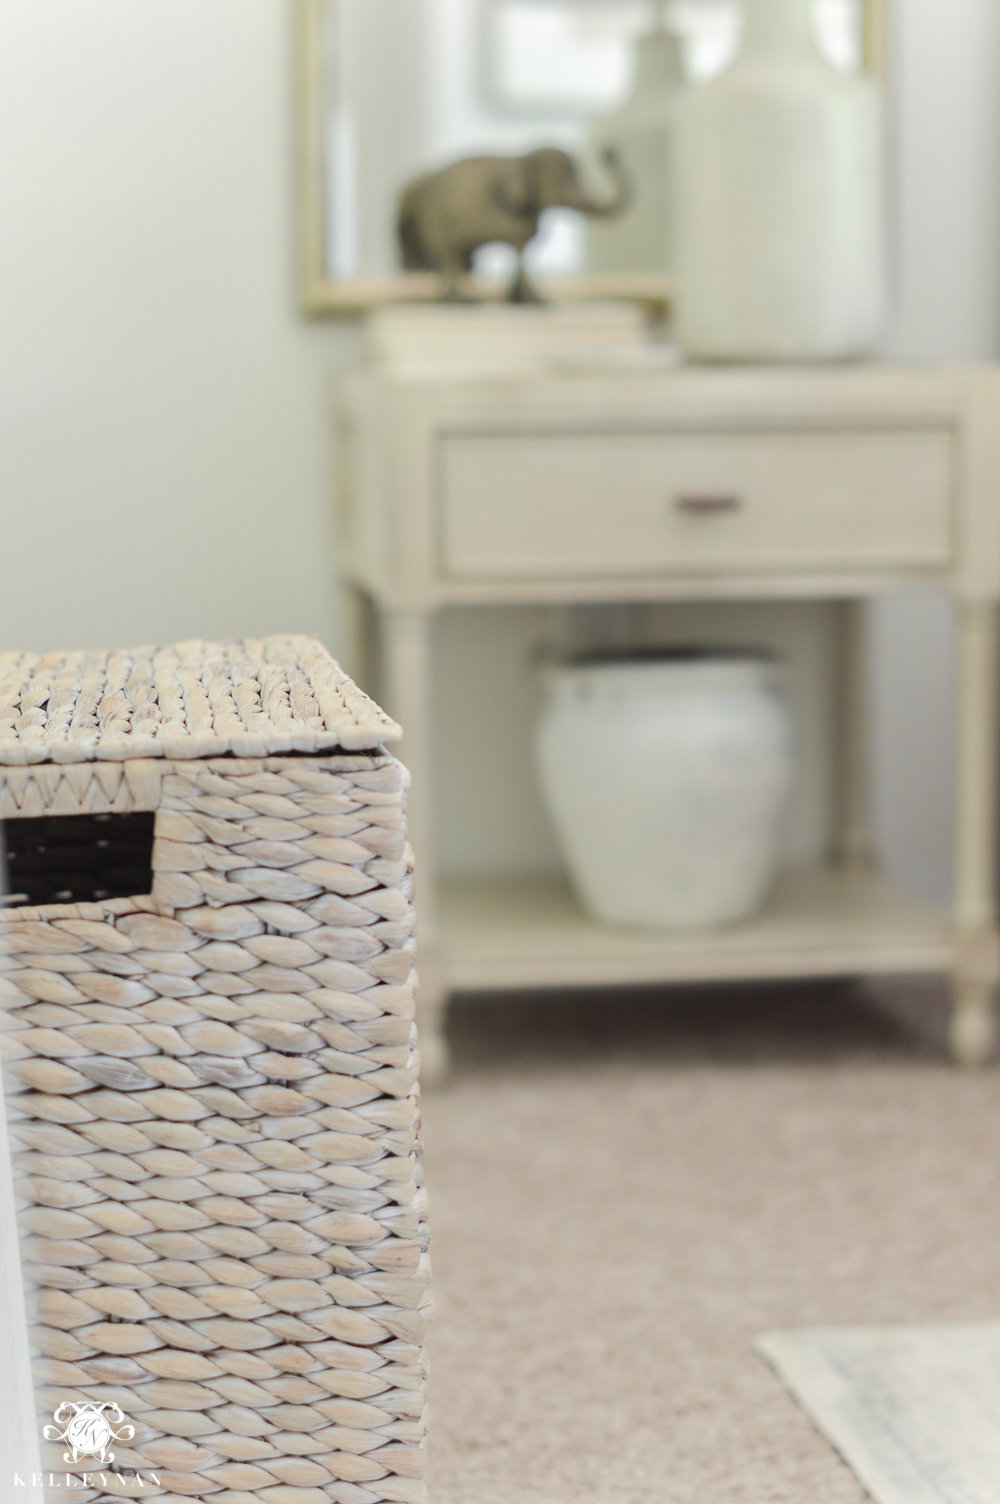 One Room Challenge Blue and White Guest Bedroom Reveal Before and After Makeover- laundry hamper in guest bedroom